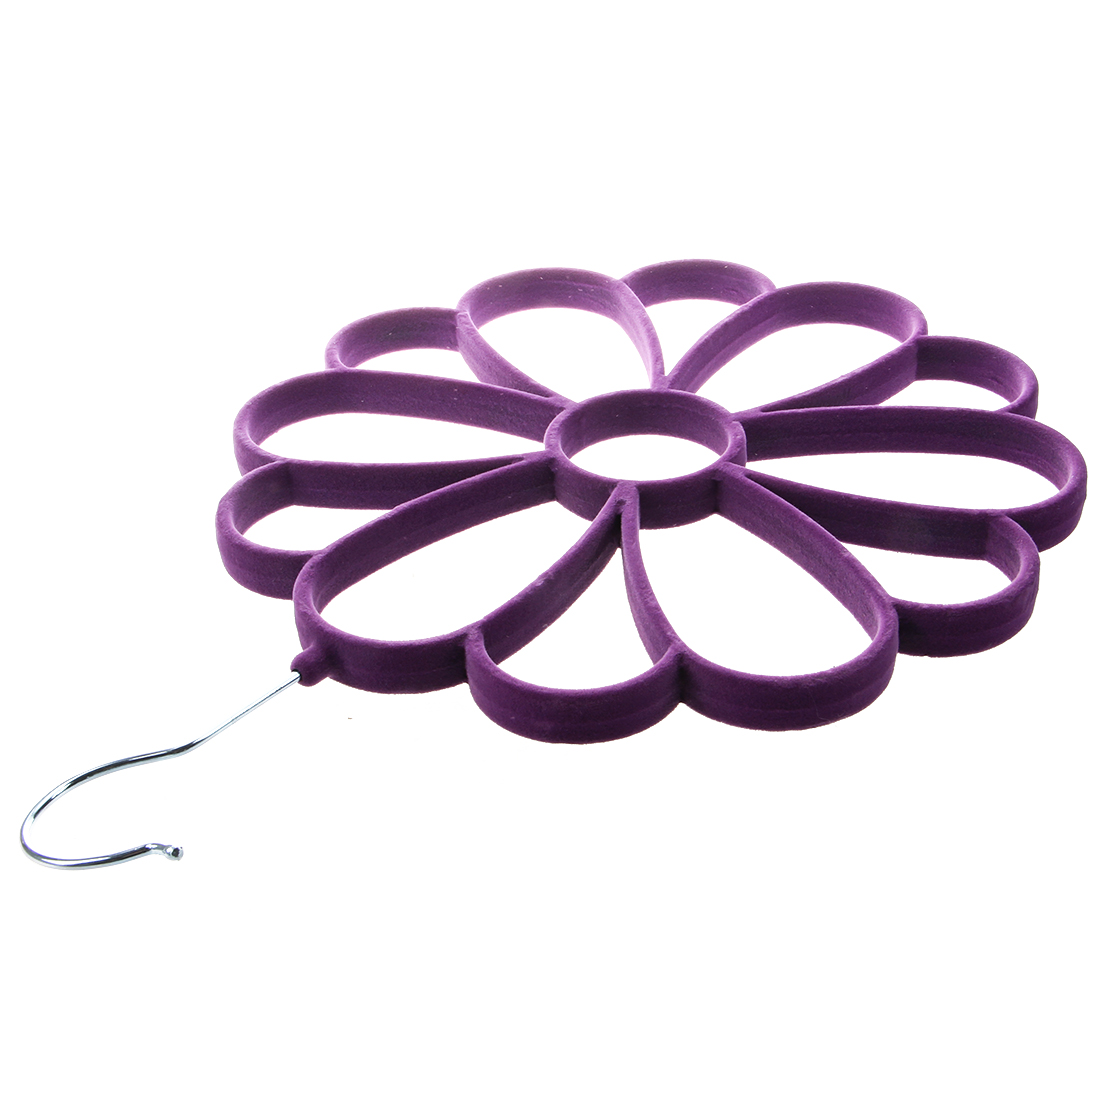 New multifunction Soft Scarf Hanger/Organizer for Closet Protect and Organize Your Delicate Scarves (Purple)